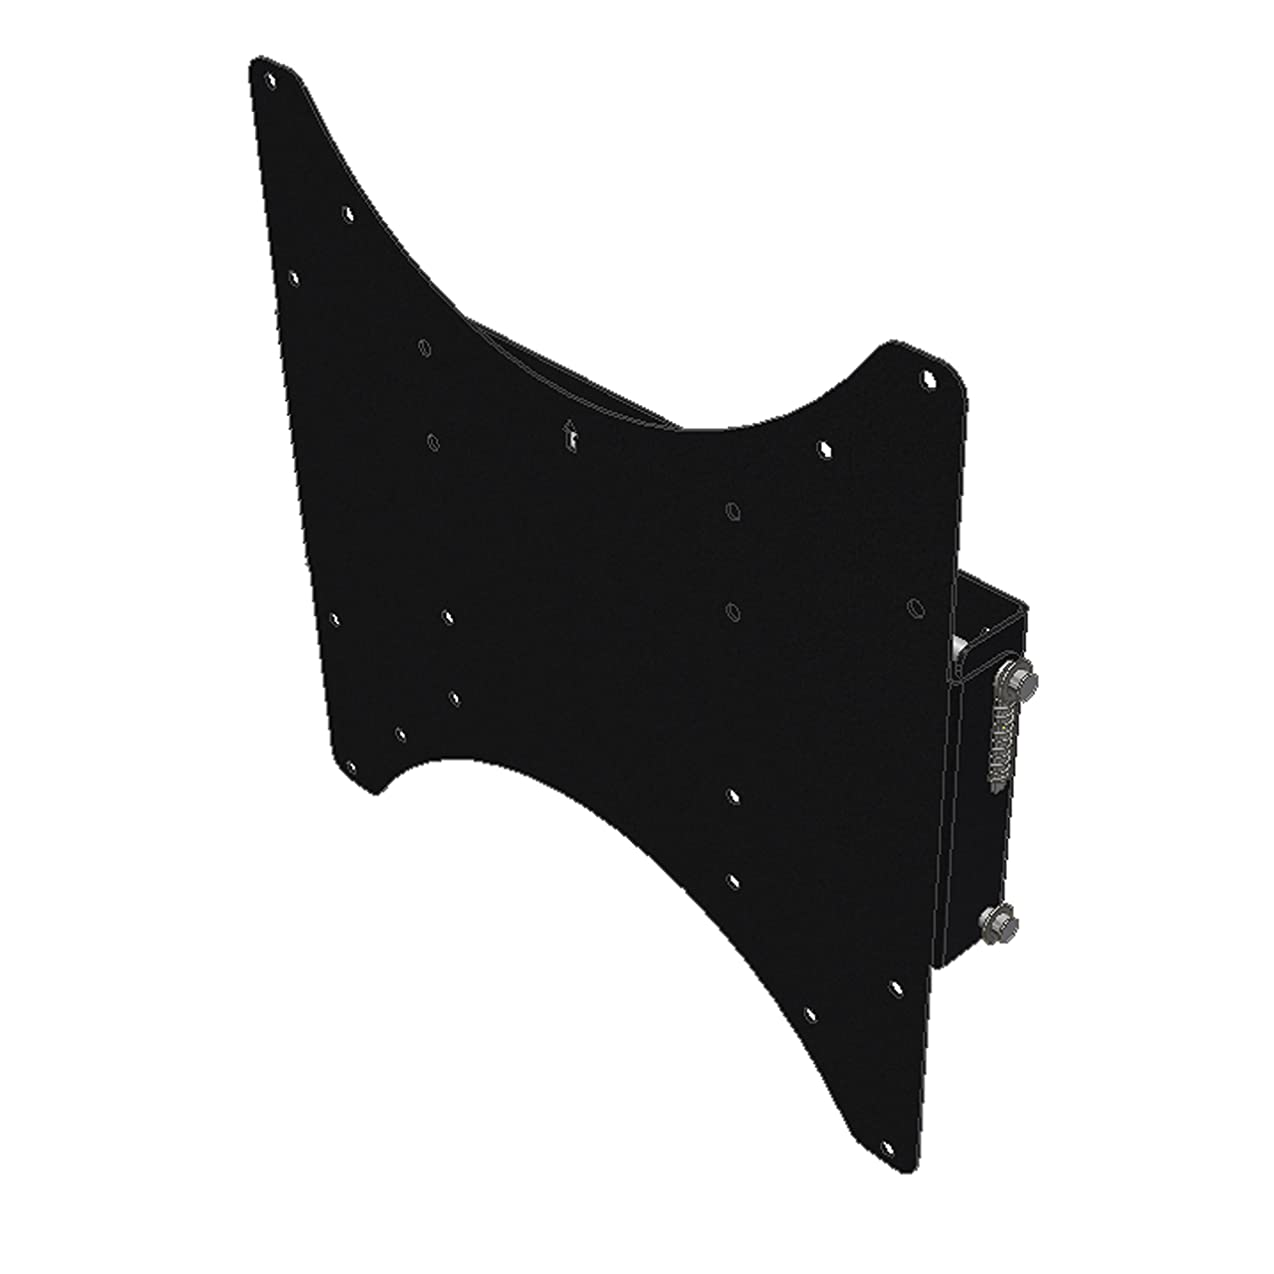 MORryde 0111.2056 TV1-048H Snap-in TV Wall Mount-Large Rigid mbxtcokikmqa7064